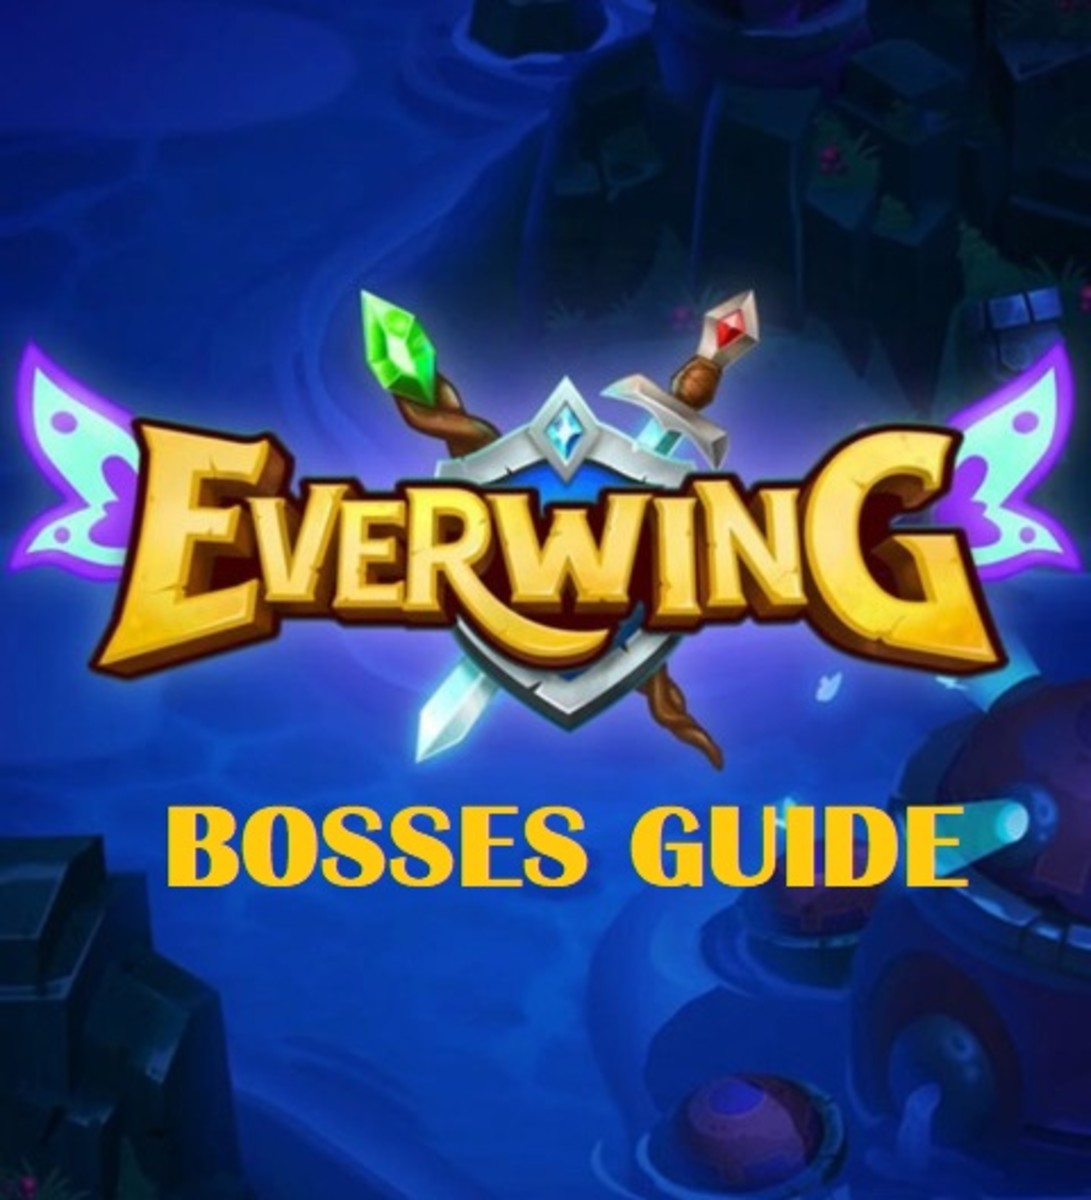 EverWing Bosses Guide